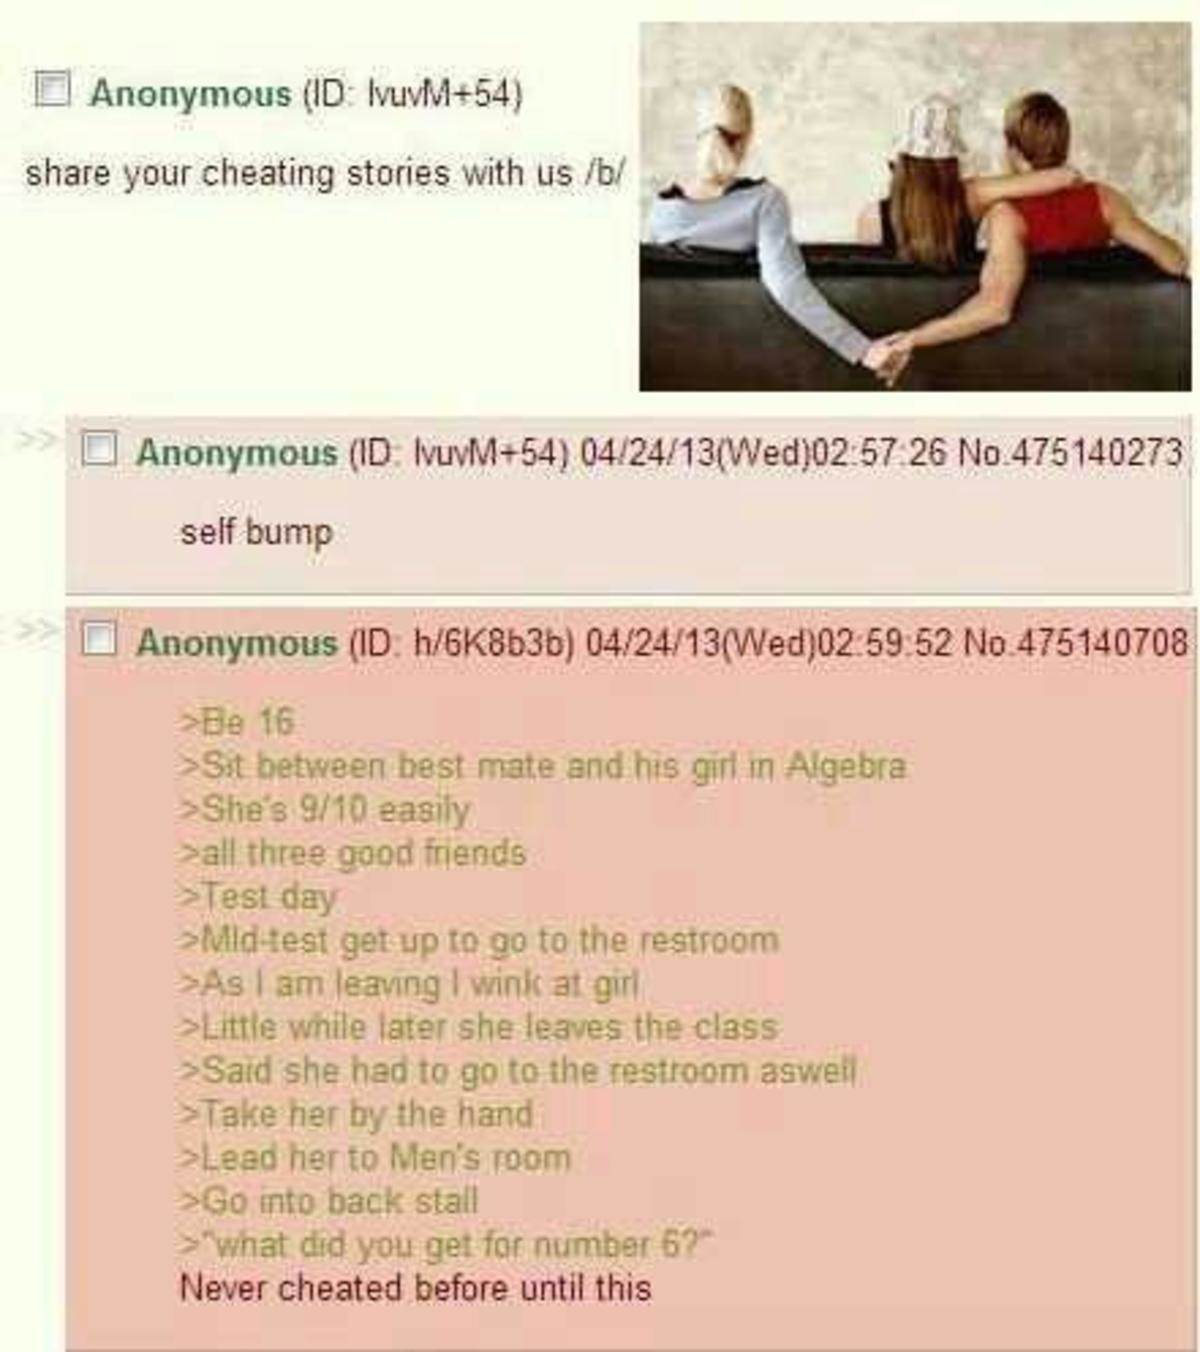 Anon is a Cheater. .. God damn, you know an image is old when it's crustier than a redditards foot fungus